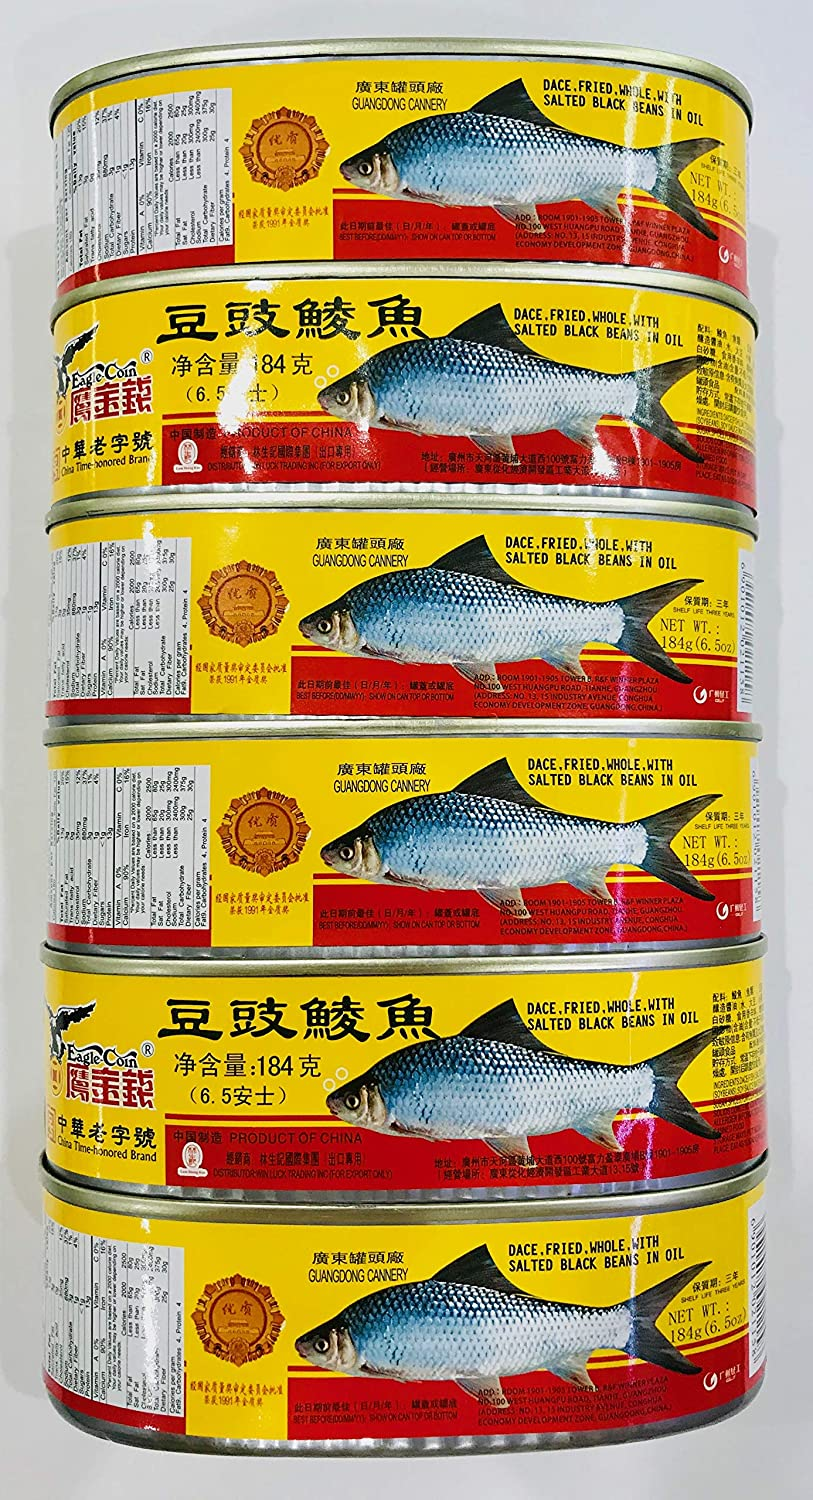 Dace (Fried & Whole) w/ Salted Black Bean in Oil ???? 6 cans